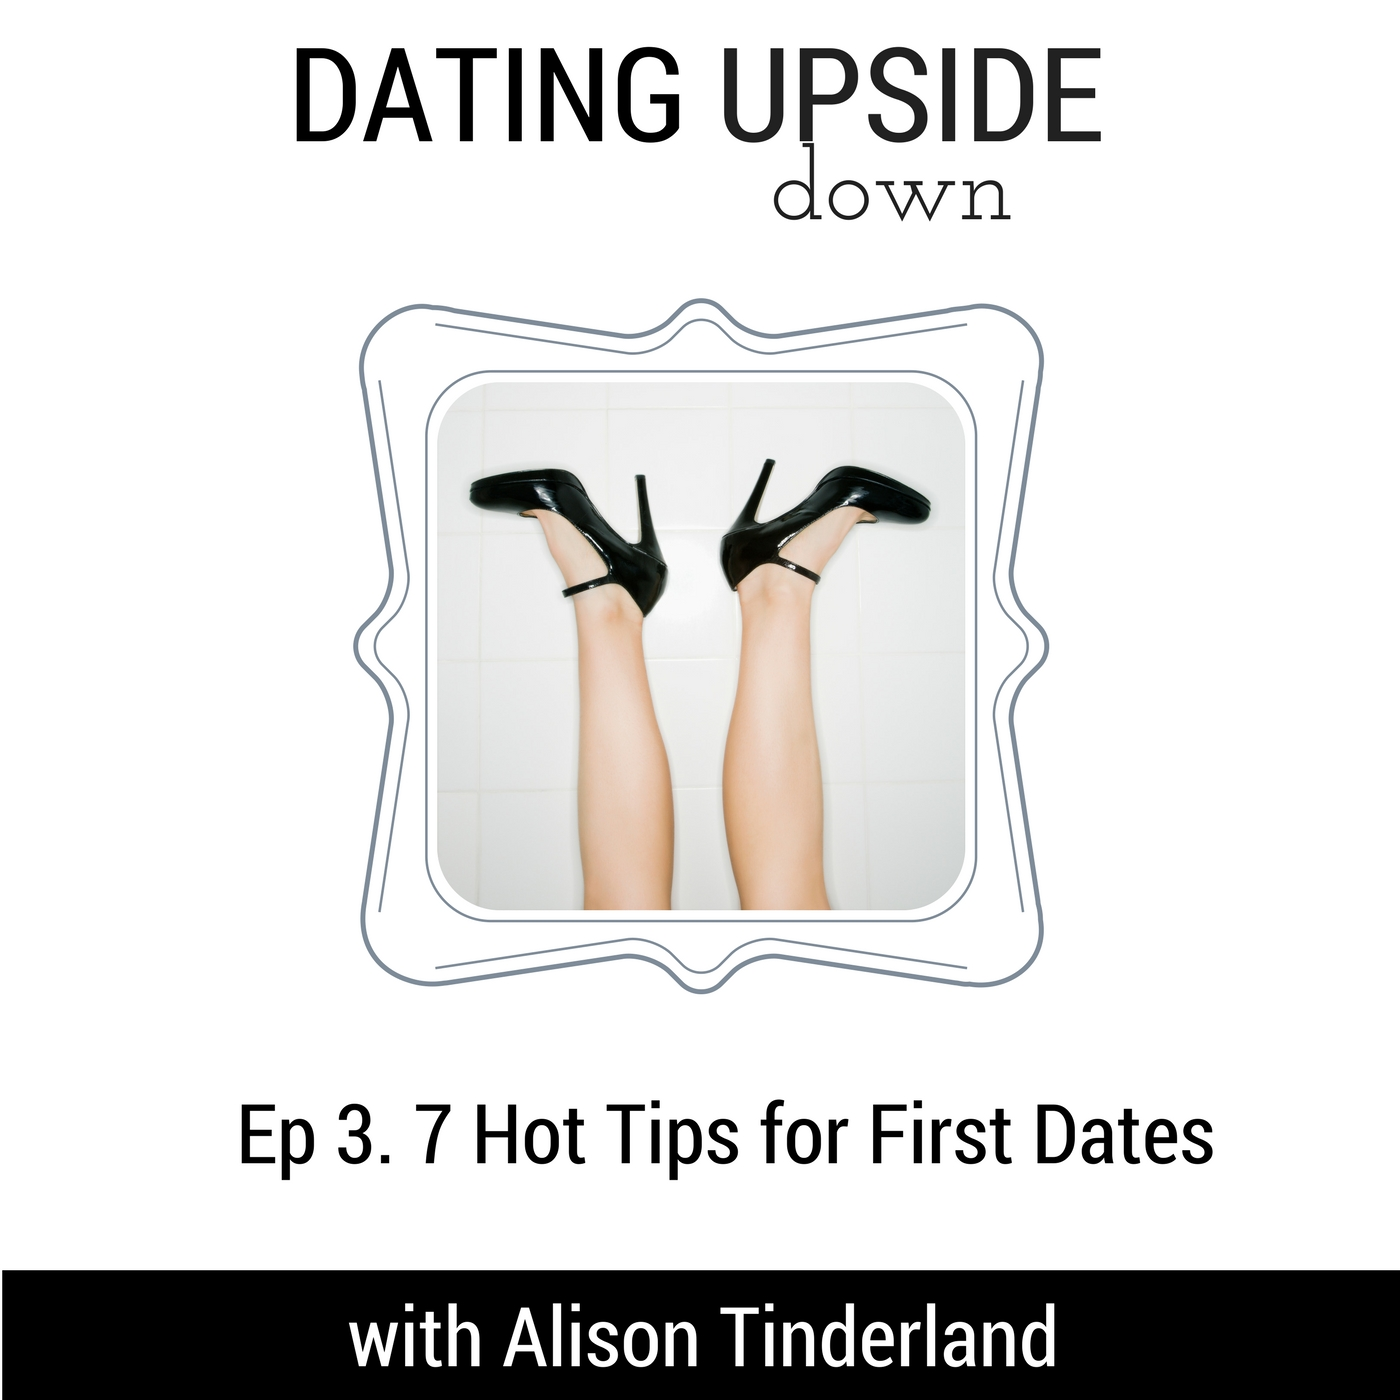 S1E3. 7 Hot Tips for First Dates